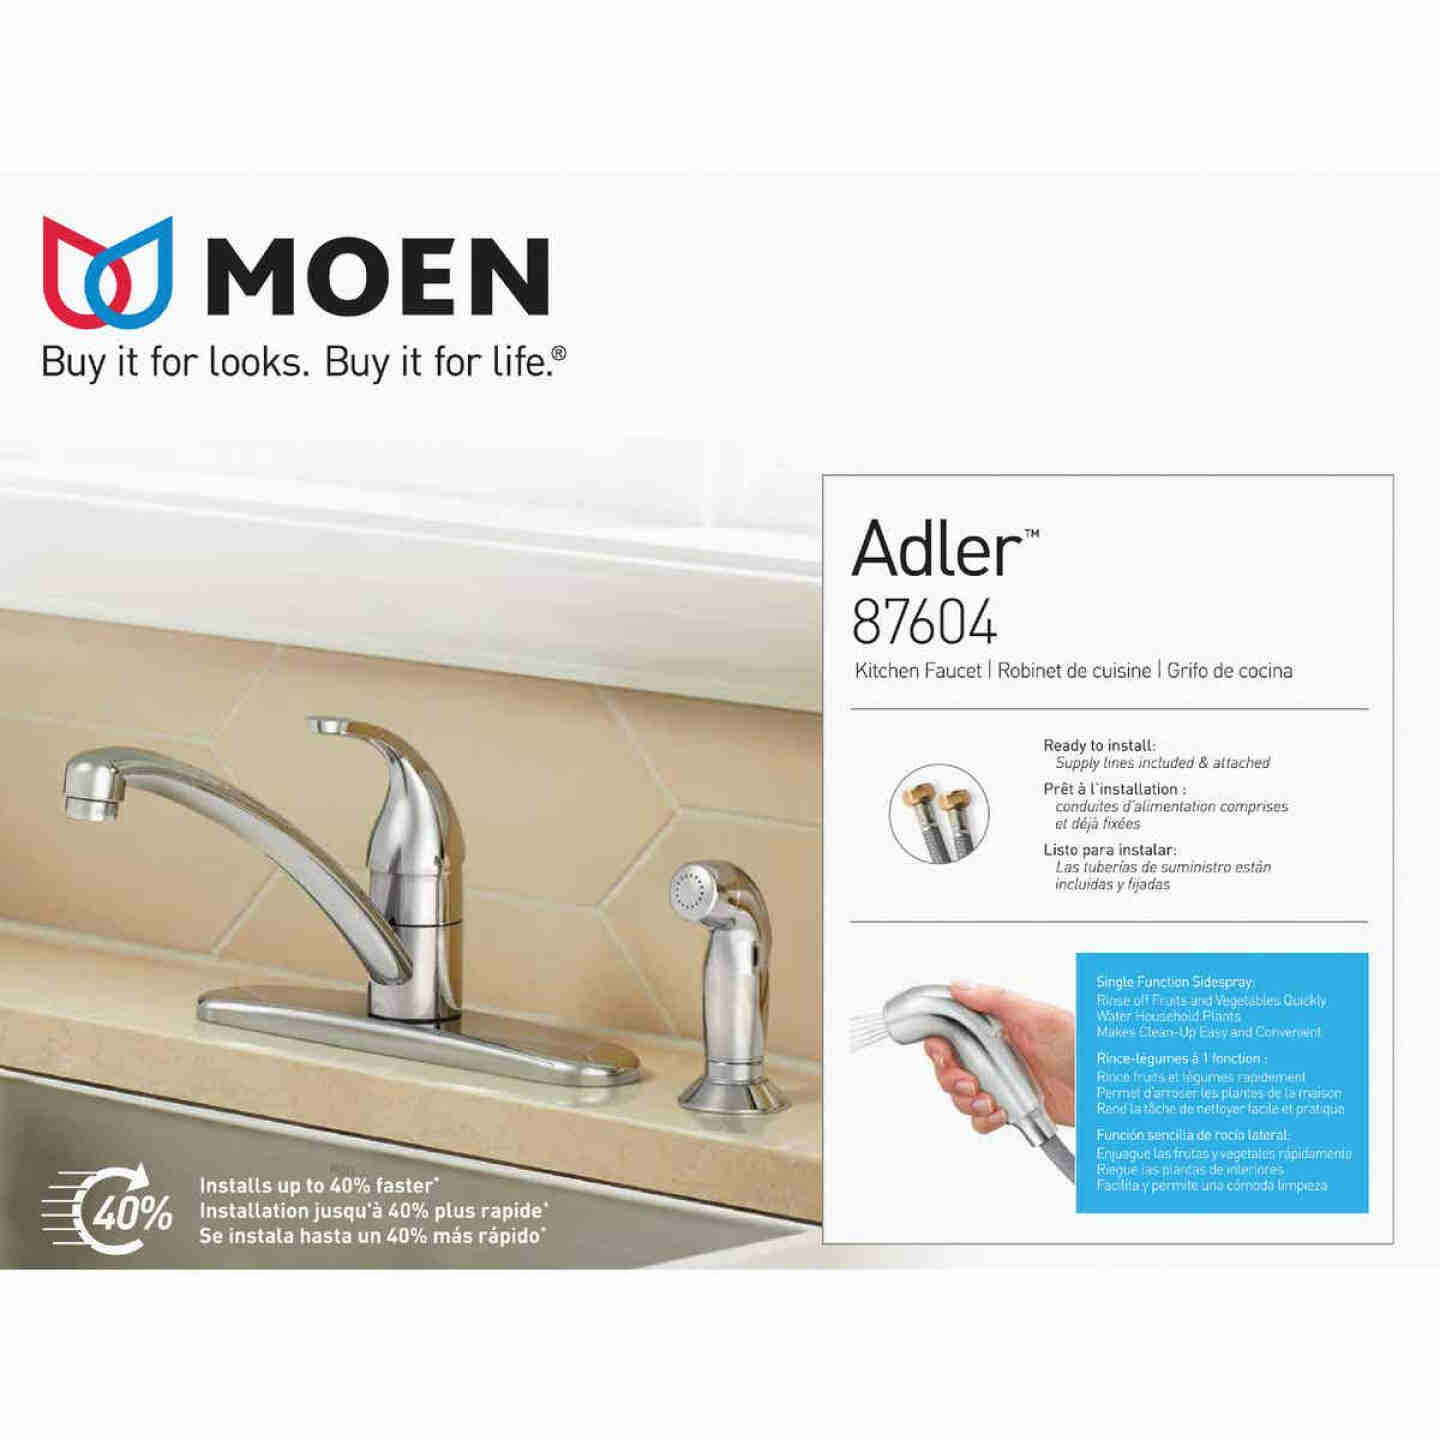 Moen Adler Single Handle Lever Kitchen Faucet with Side Spray, Chrome Image 3